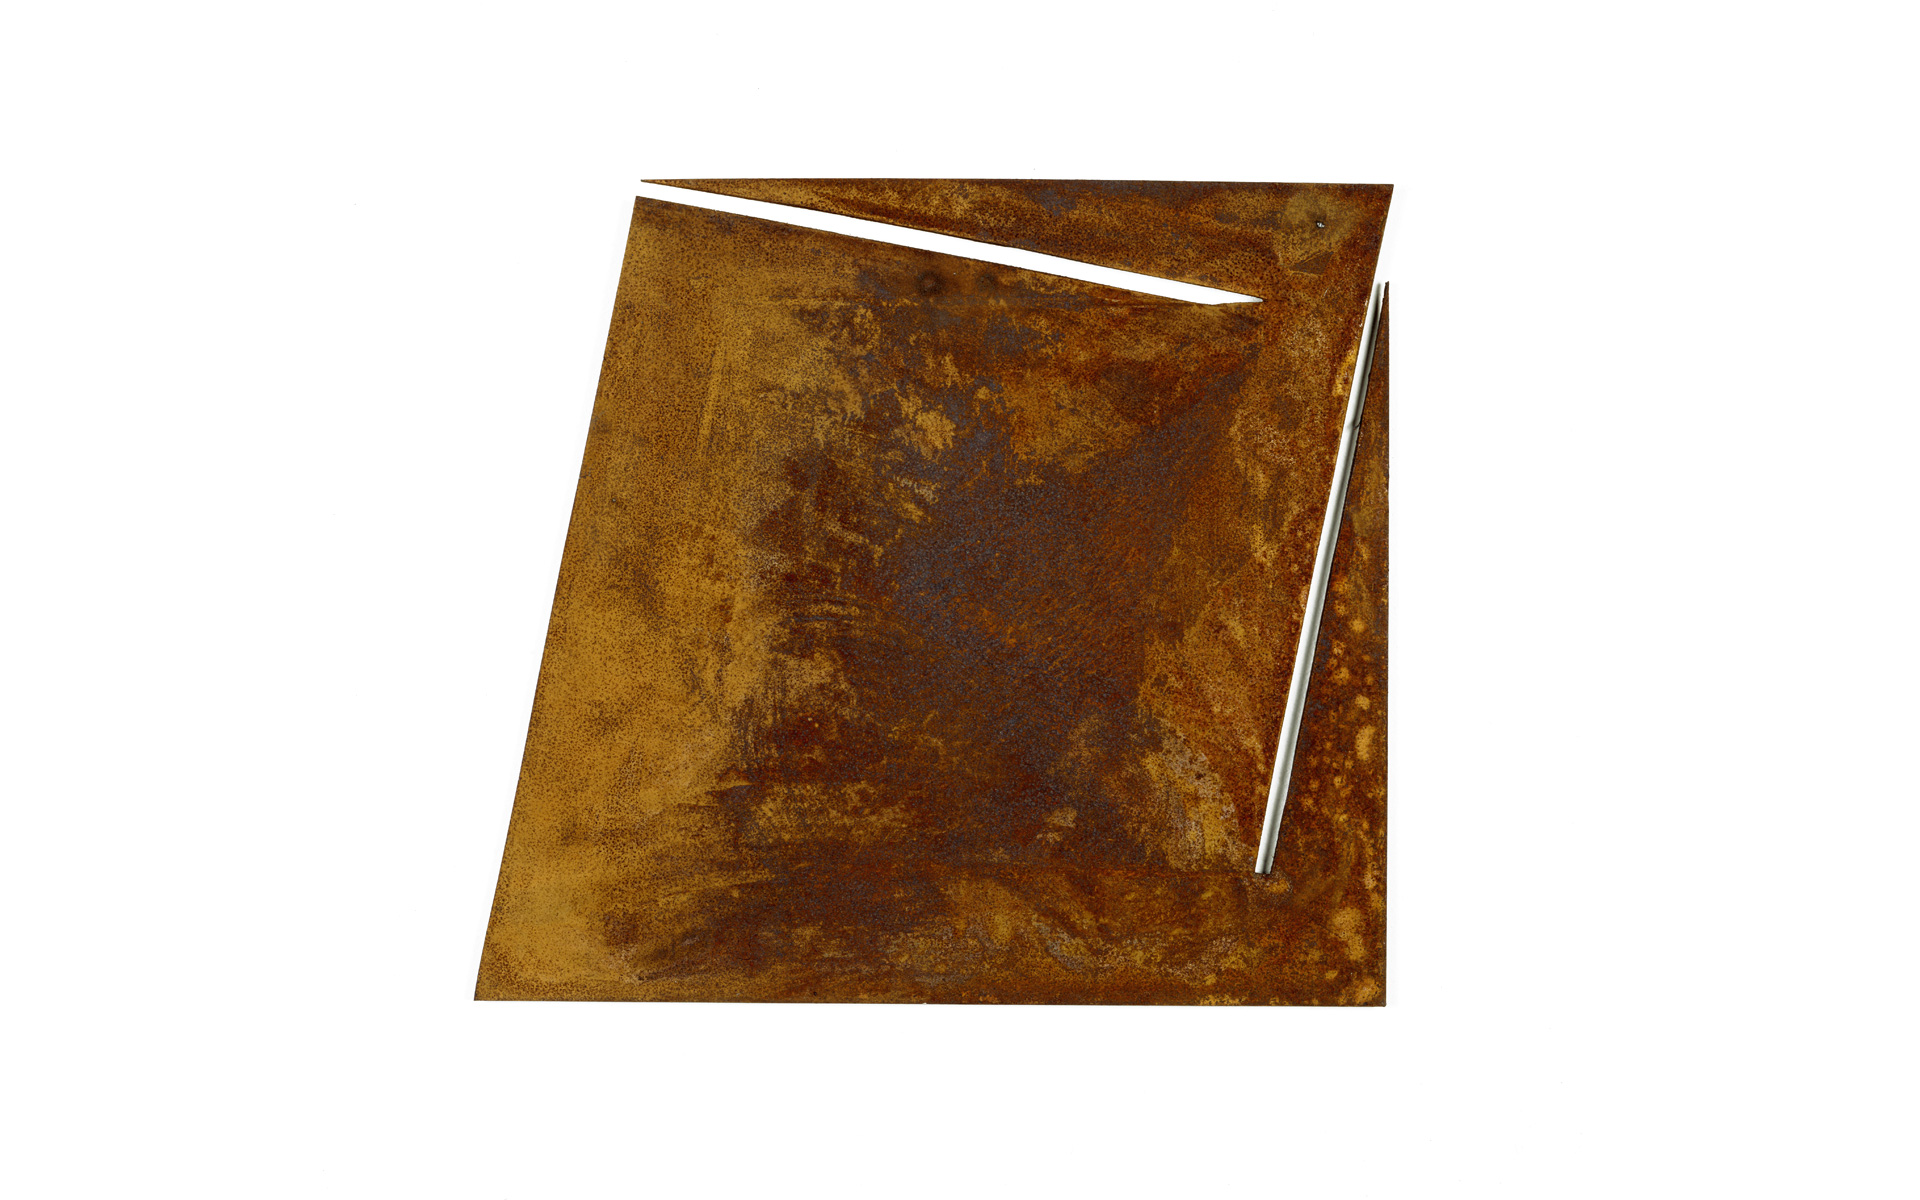 O. T., 1988 Steel rusted 43 × 47.2 × 0.5 cm - Photo: Christoph Valentien